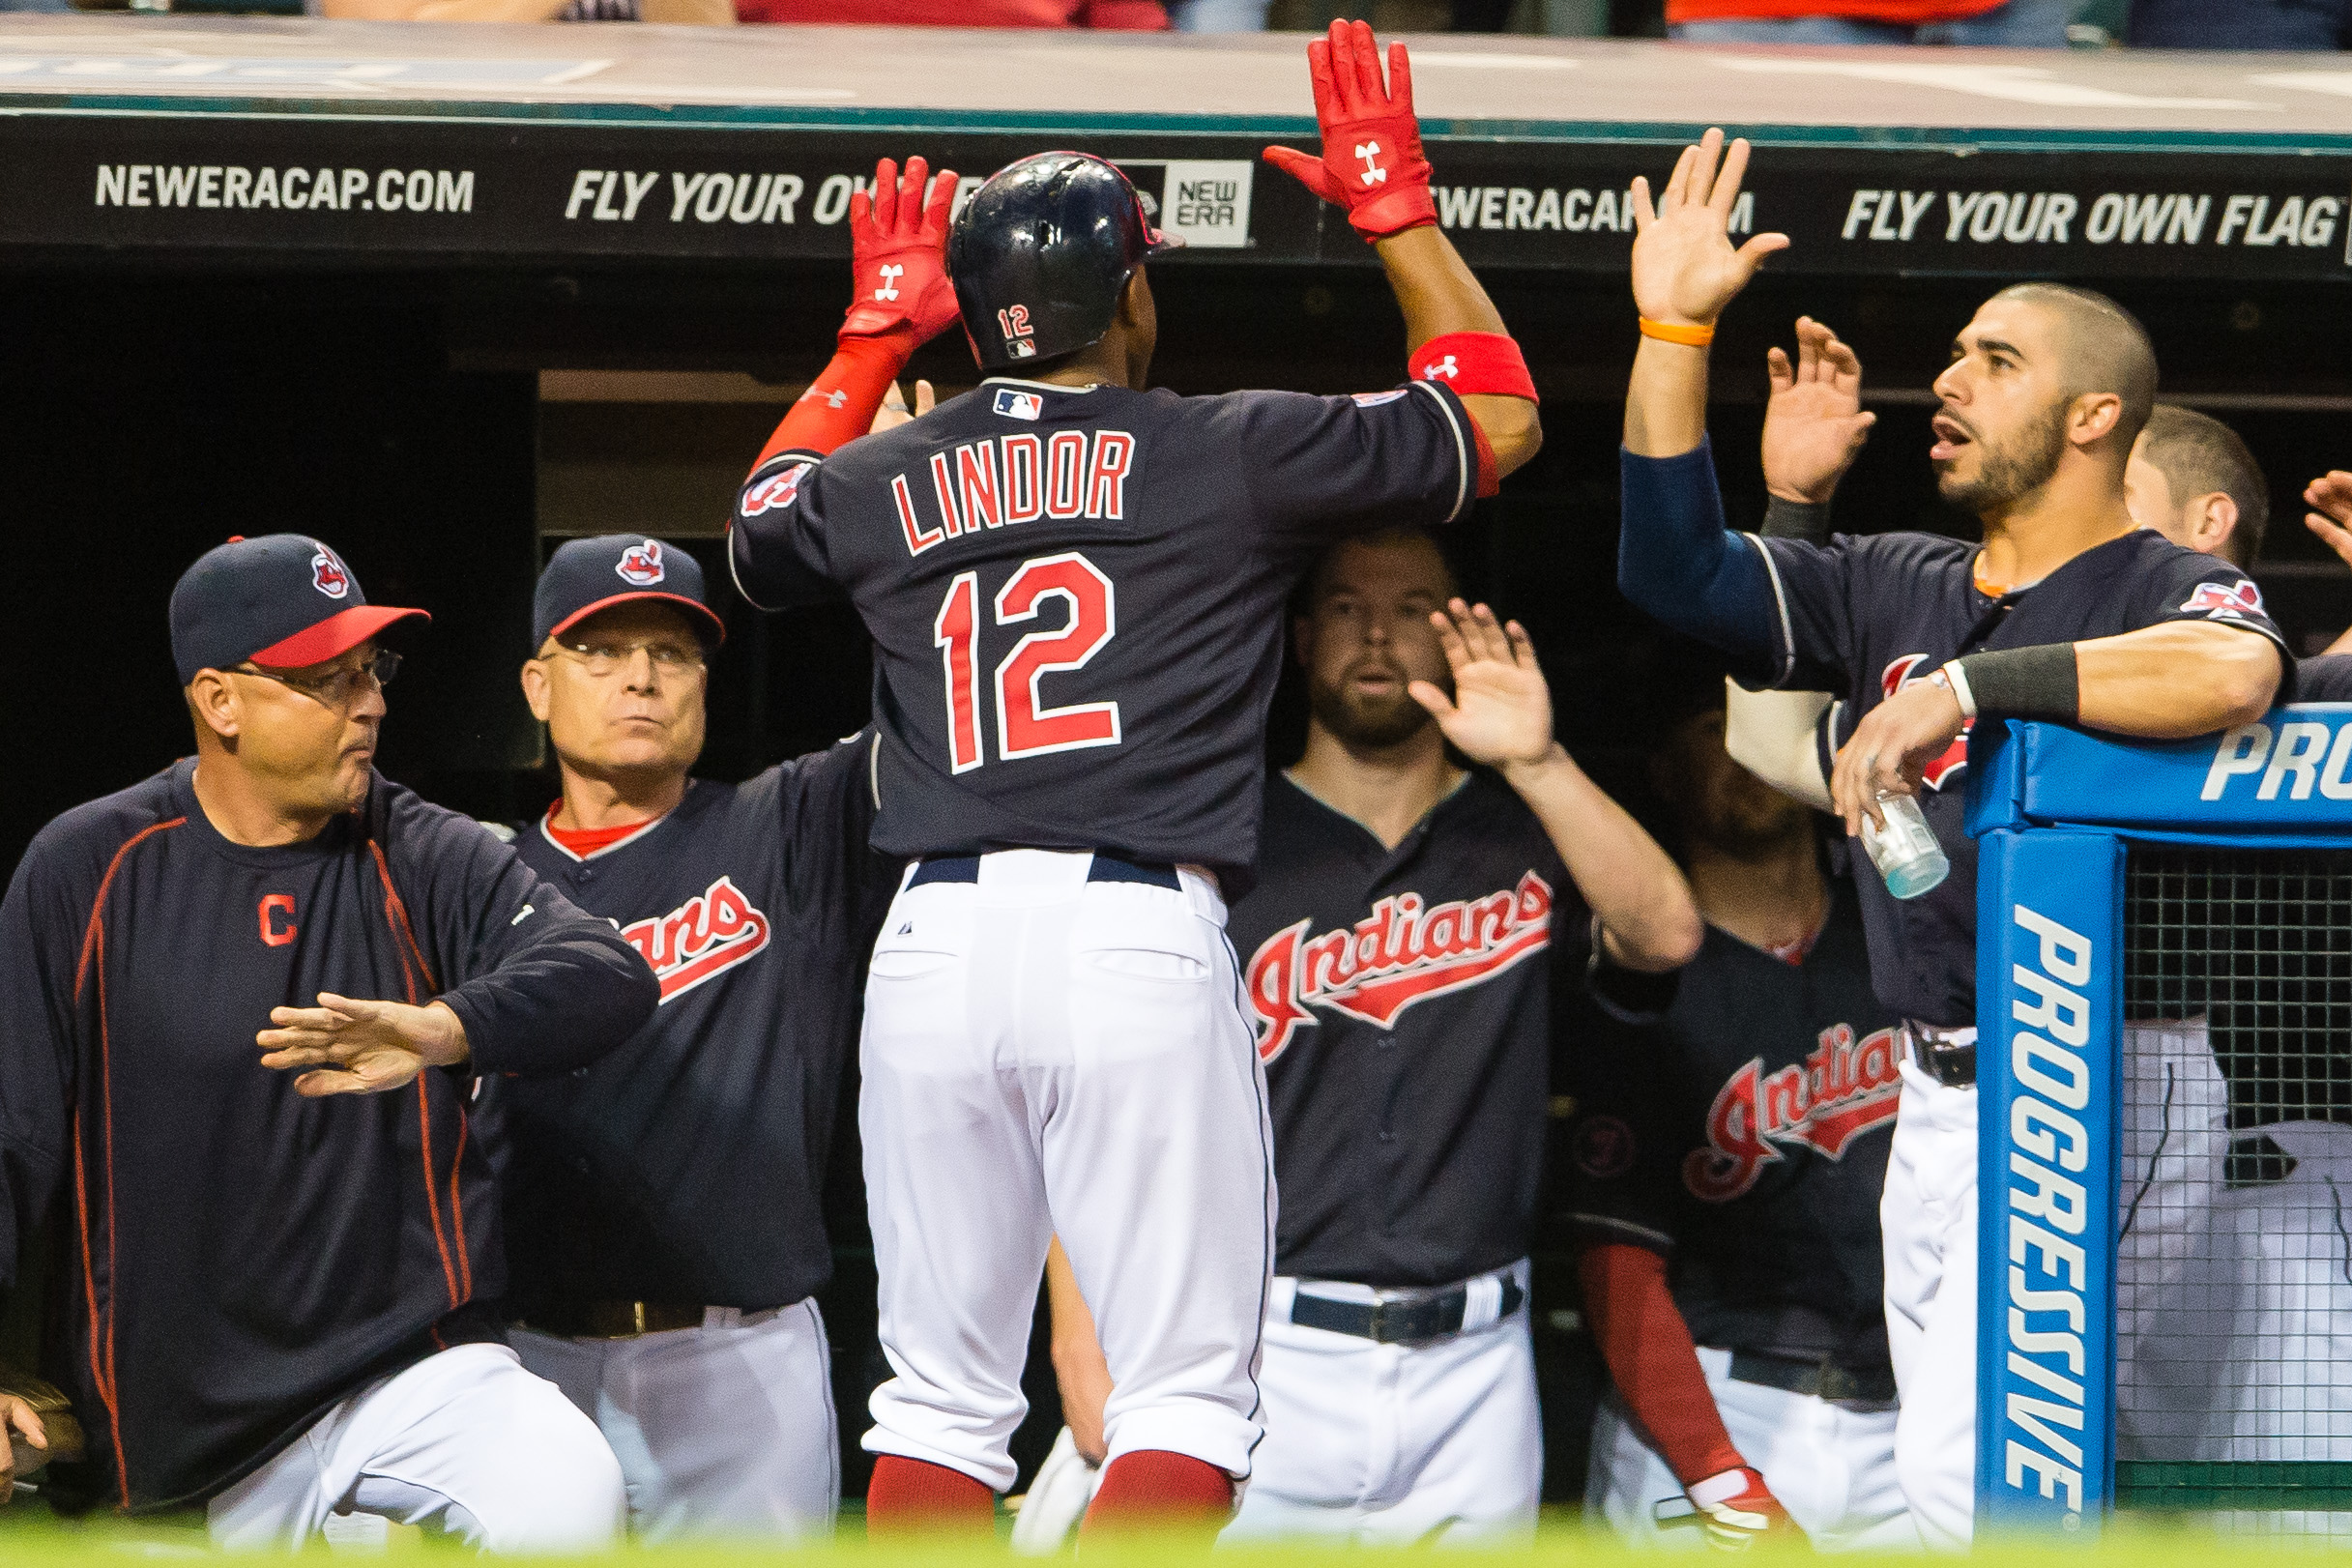 Will the Indians celebrate a division title in 2016?